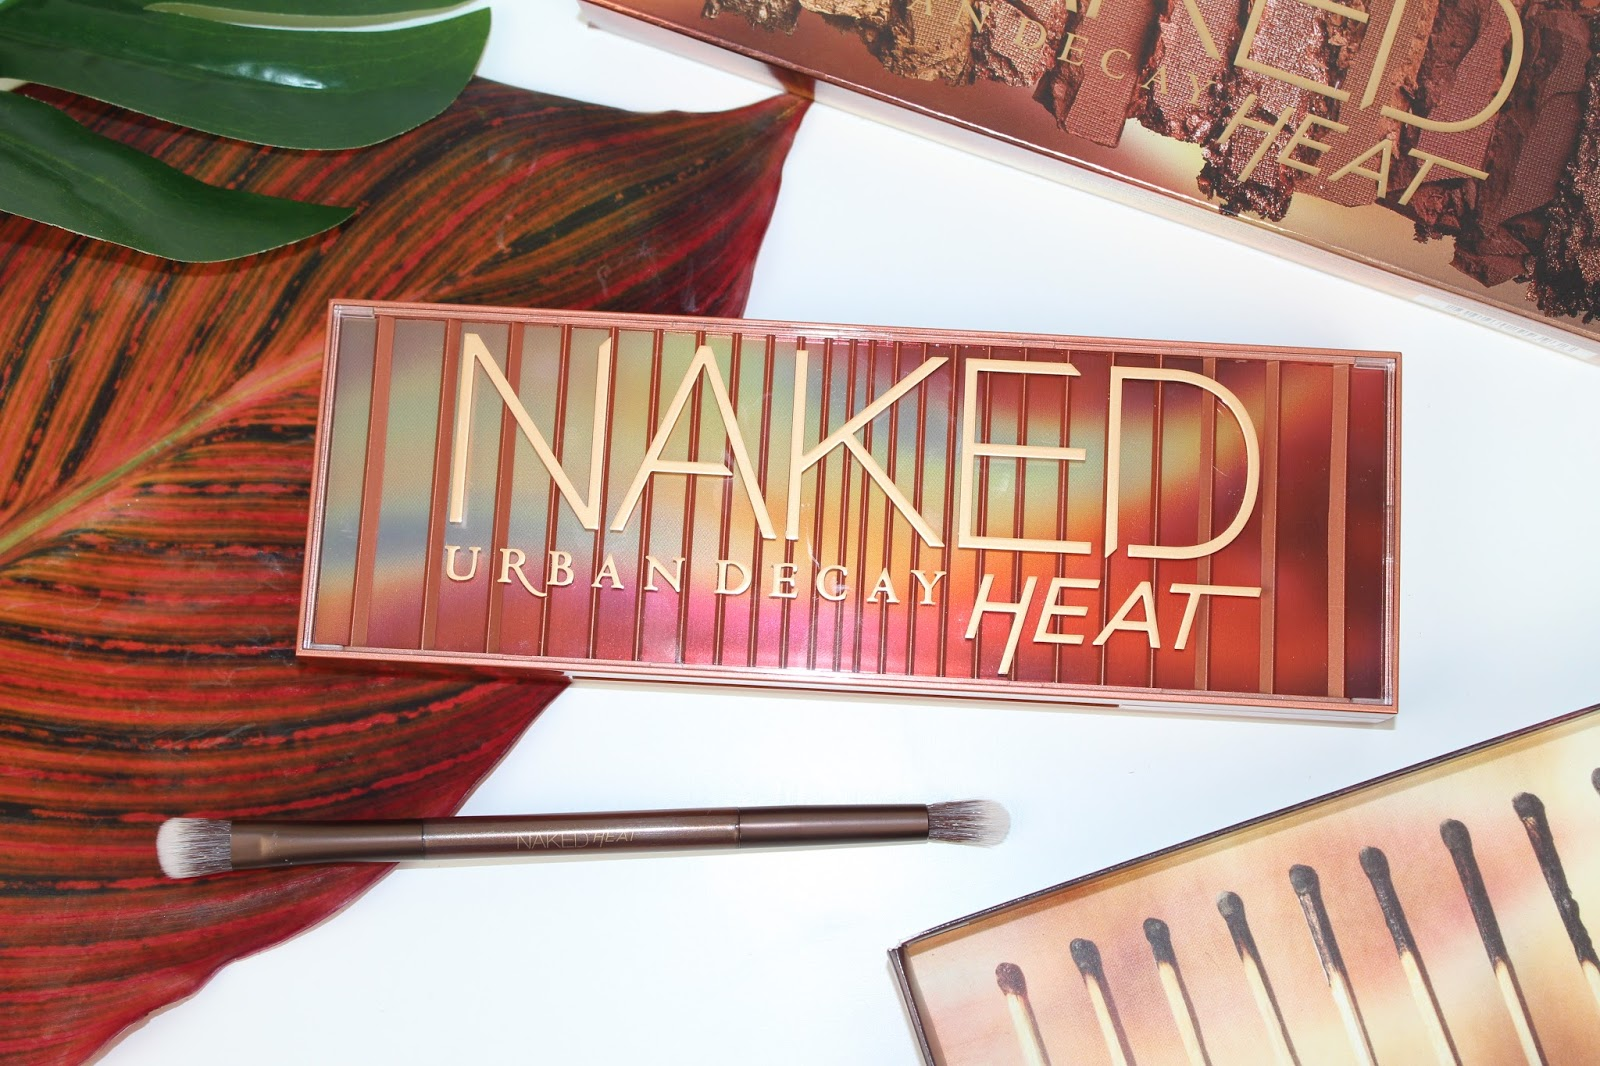 Urban Decay Naked Heat Palette Review, Swatches and Eye Look